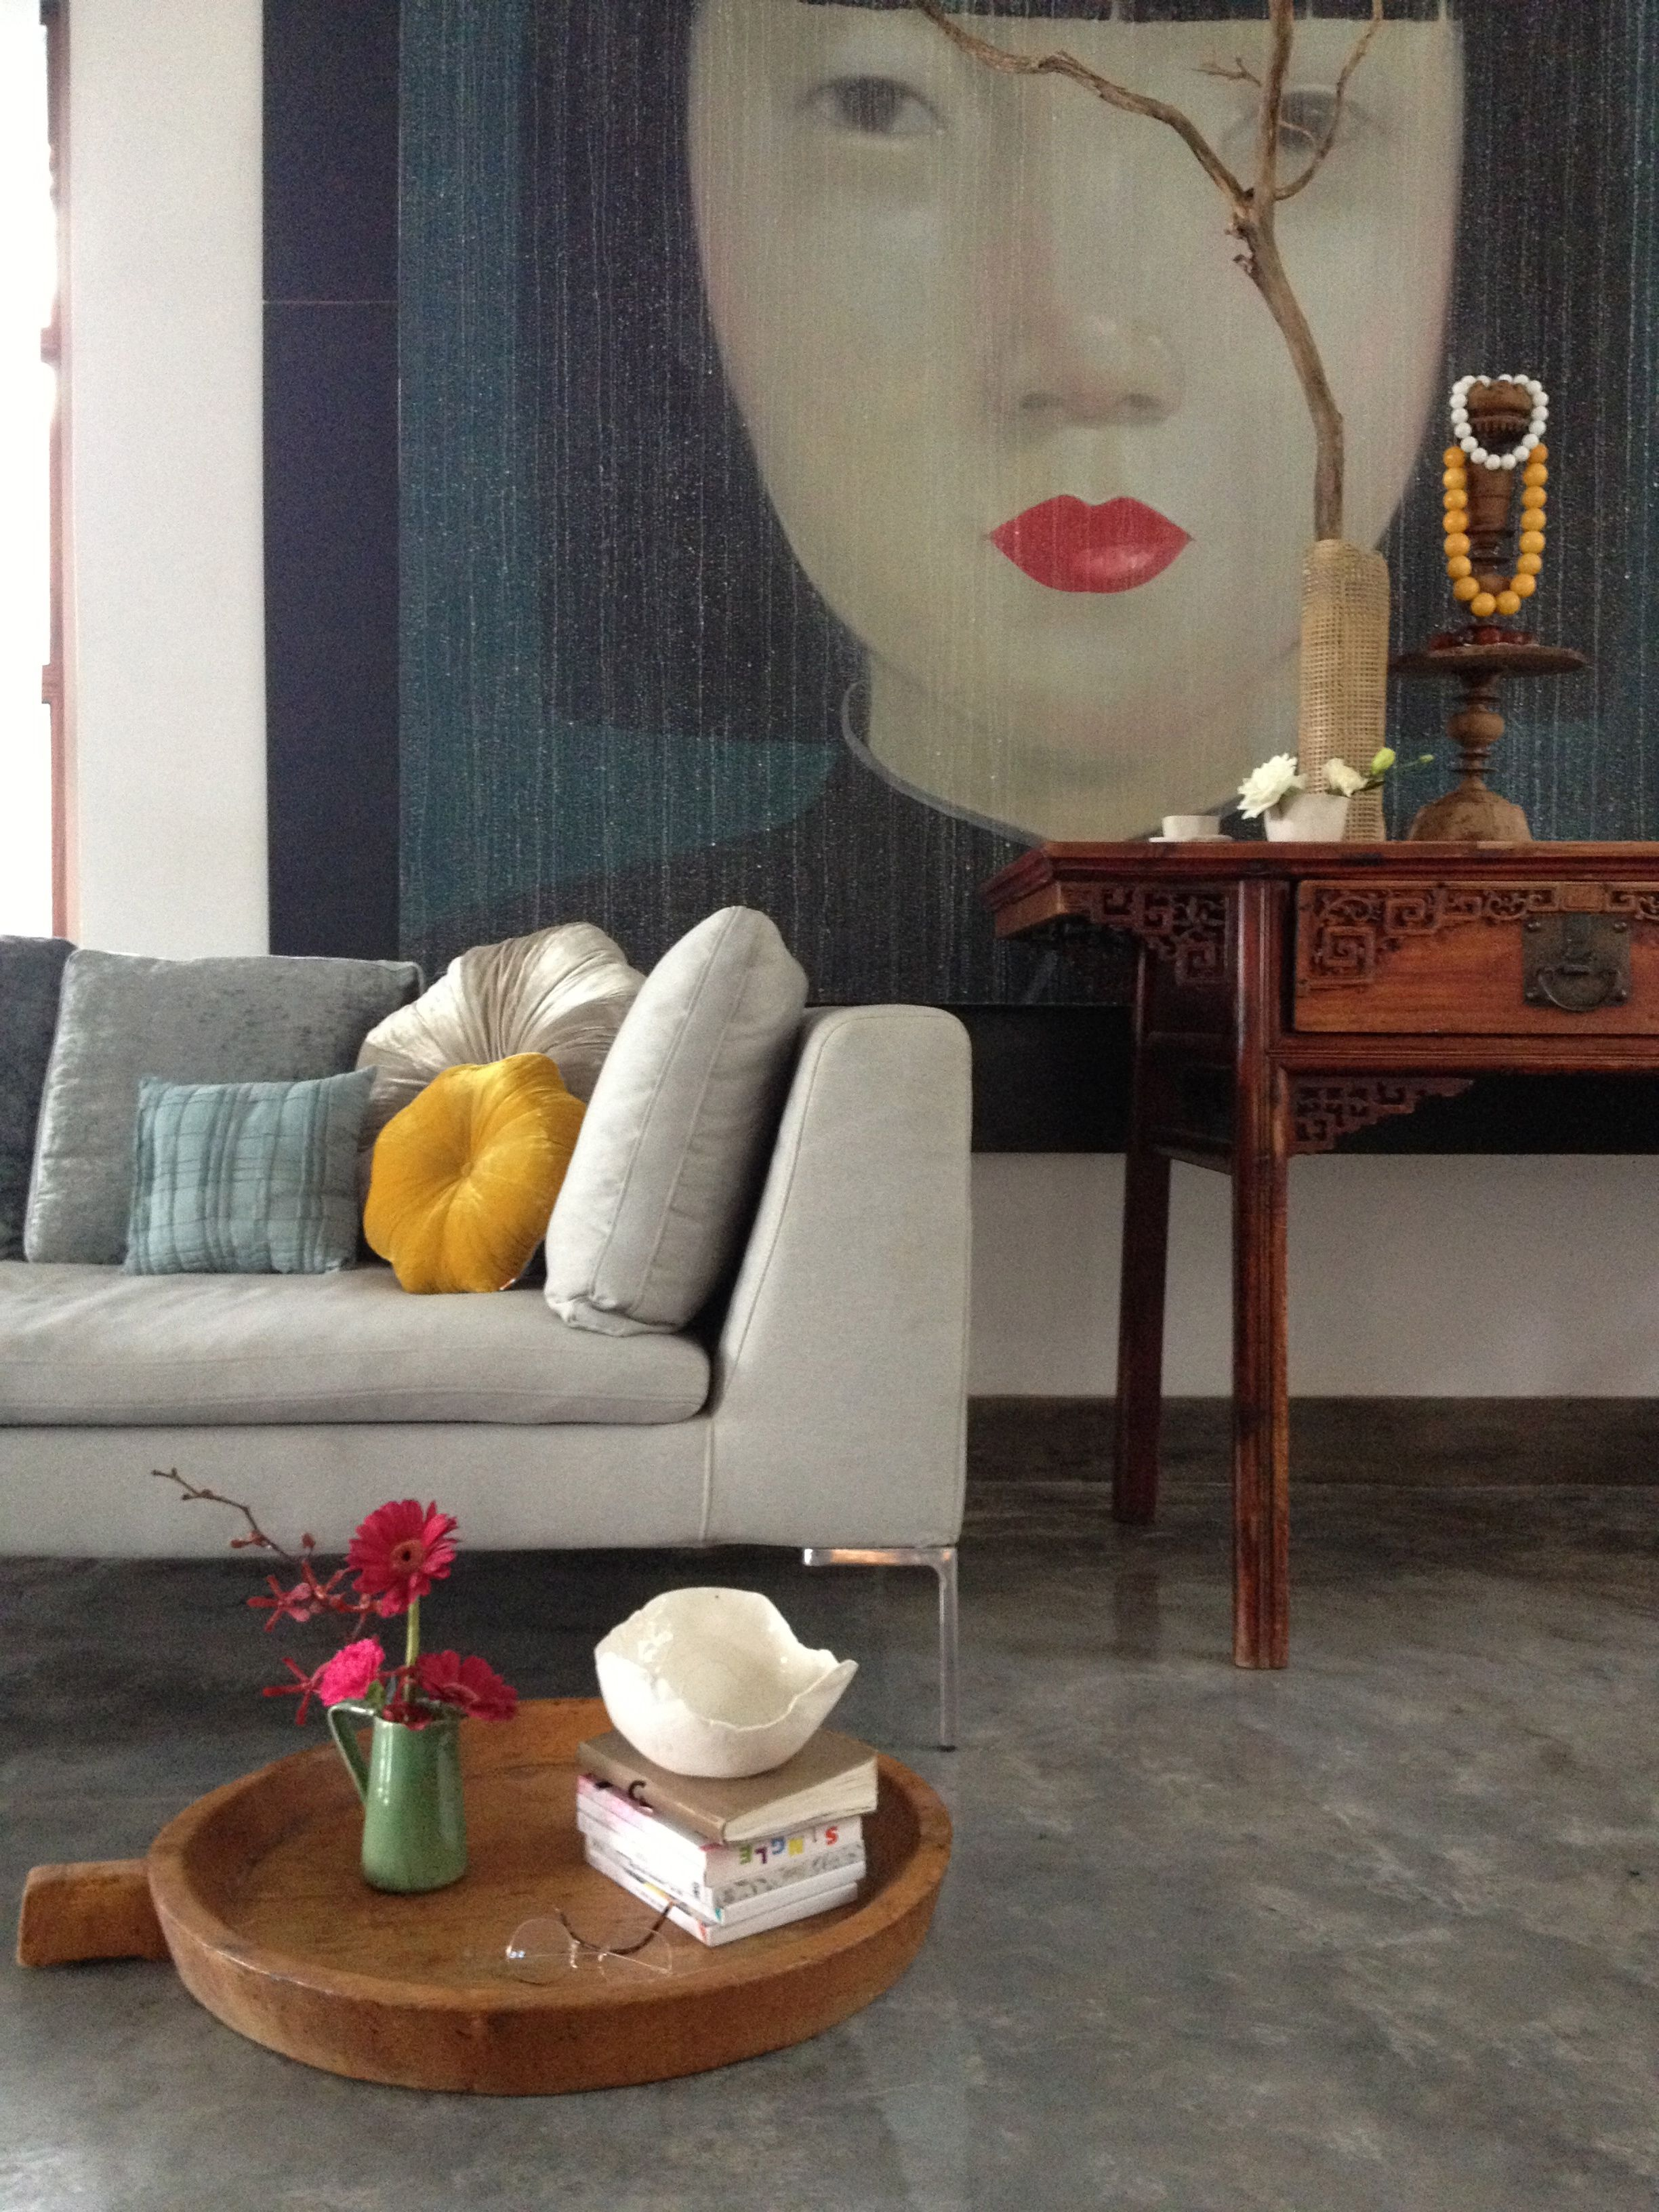 Thai Wohnzimmer My Home For Photoshoot Wallpaper Magazine Painting From